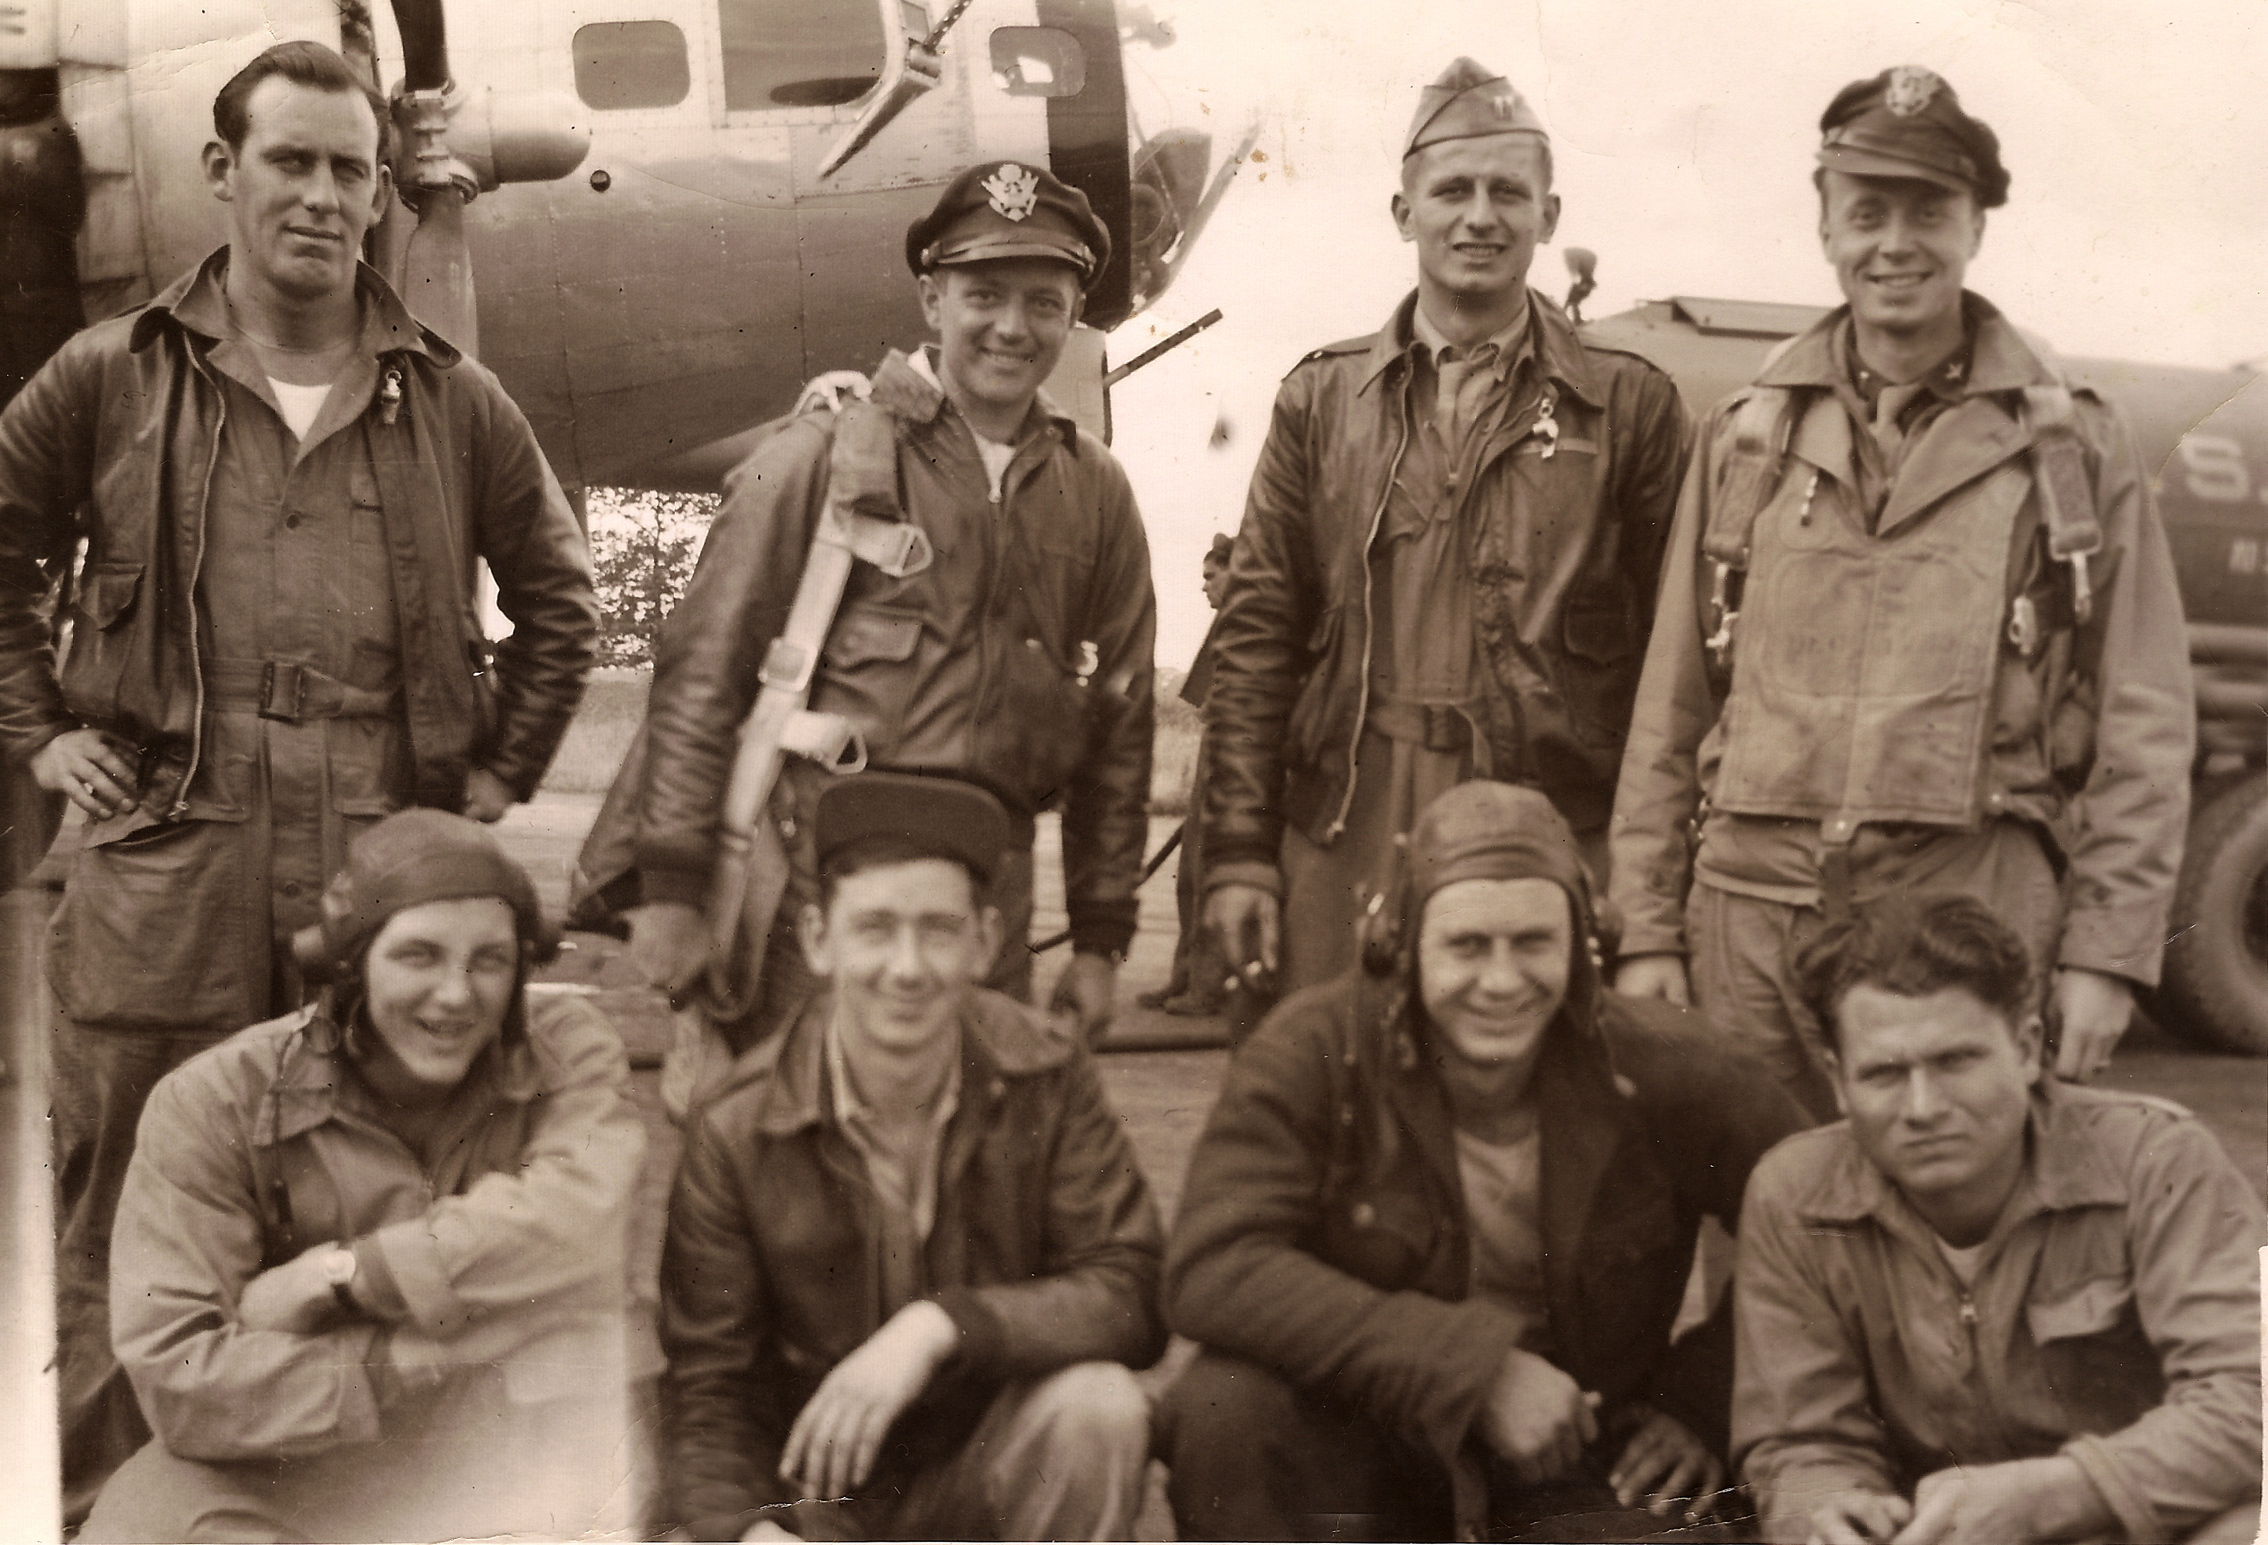 B-17 pilot Ernest Erickson wrote about a bombing raid on ...